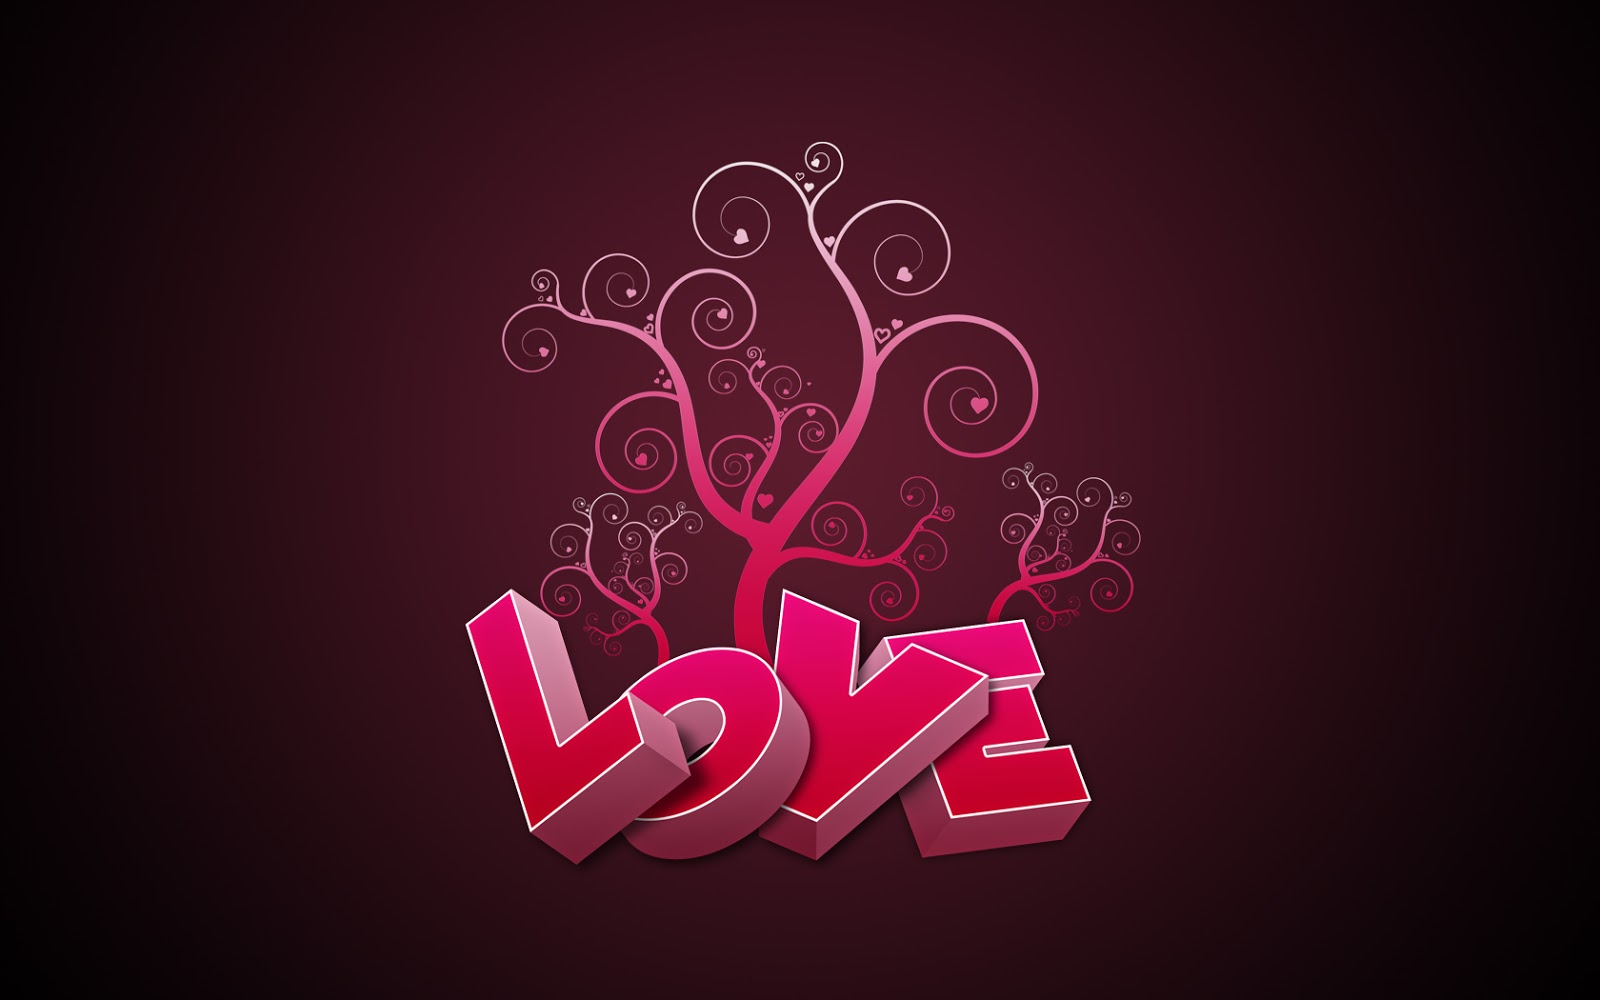 Love Ka Wallpaper : Sms with Wallpapers: 12/28/13